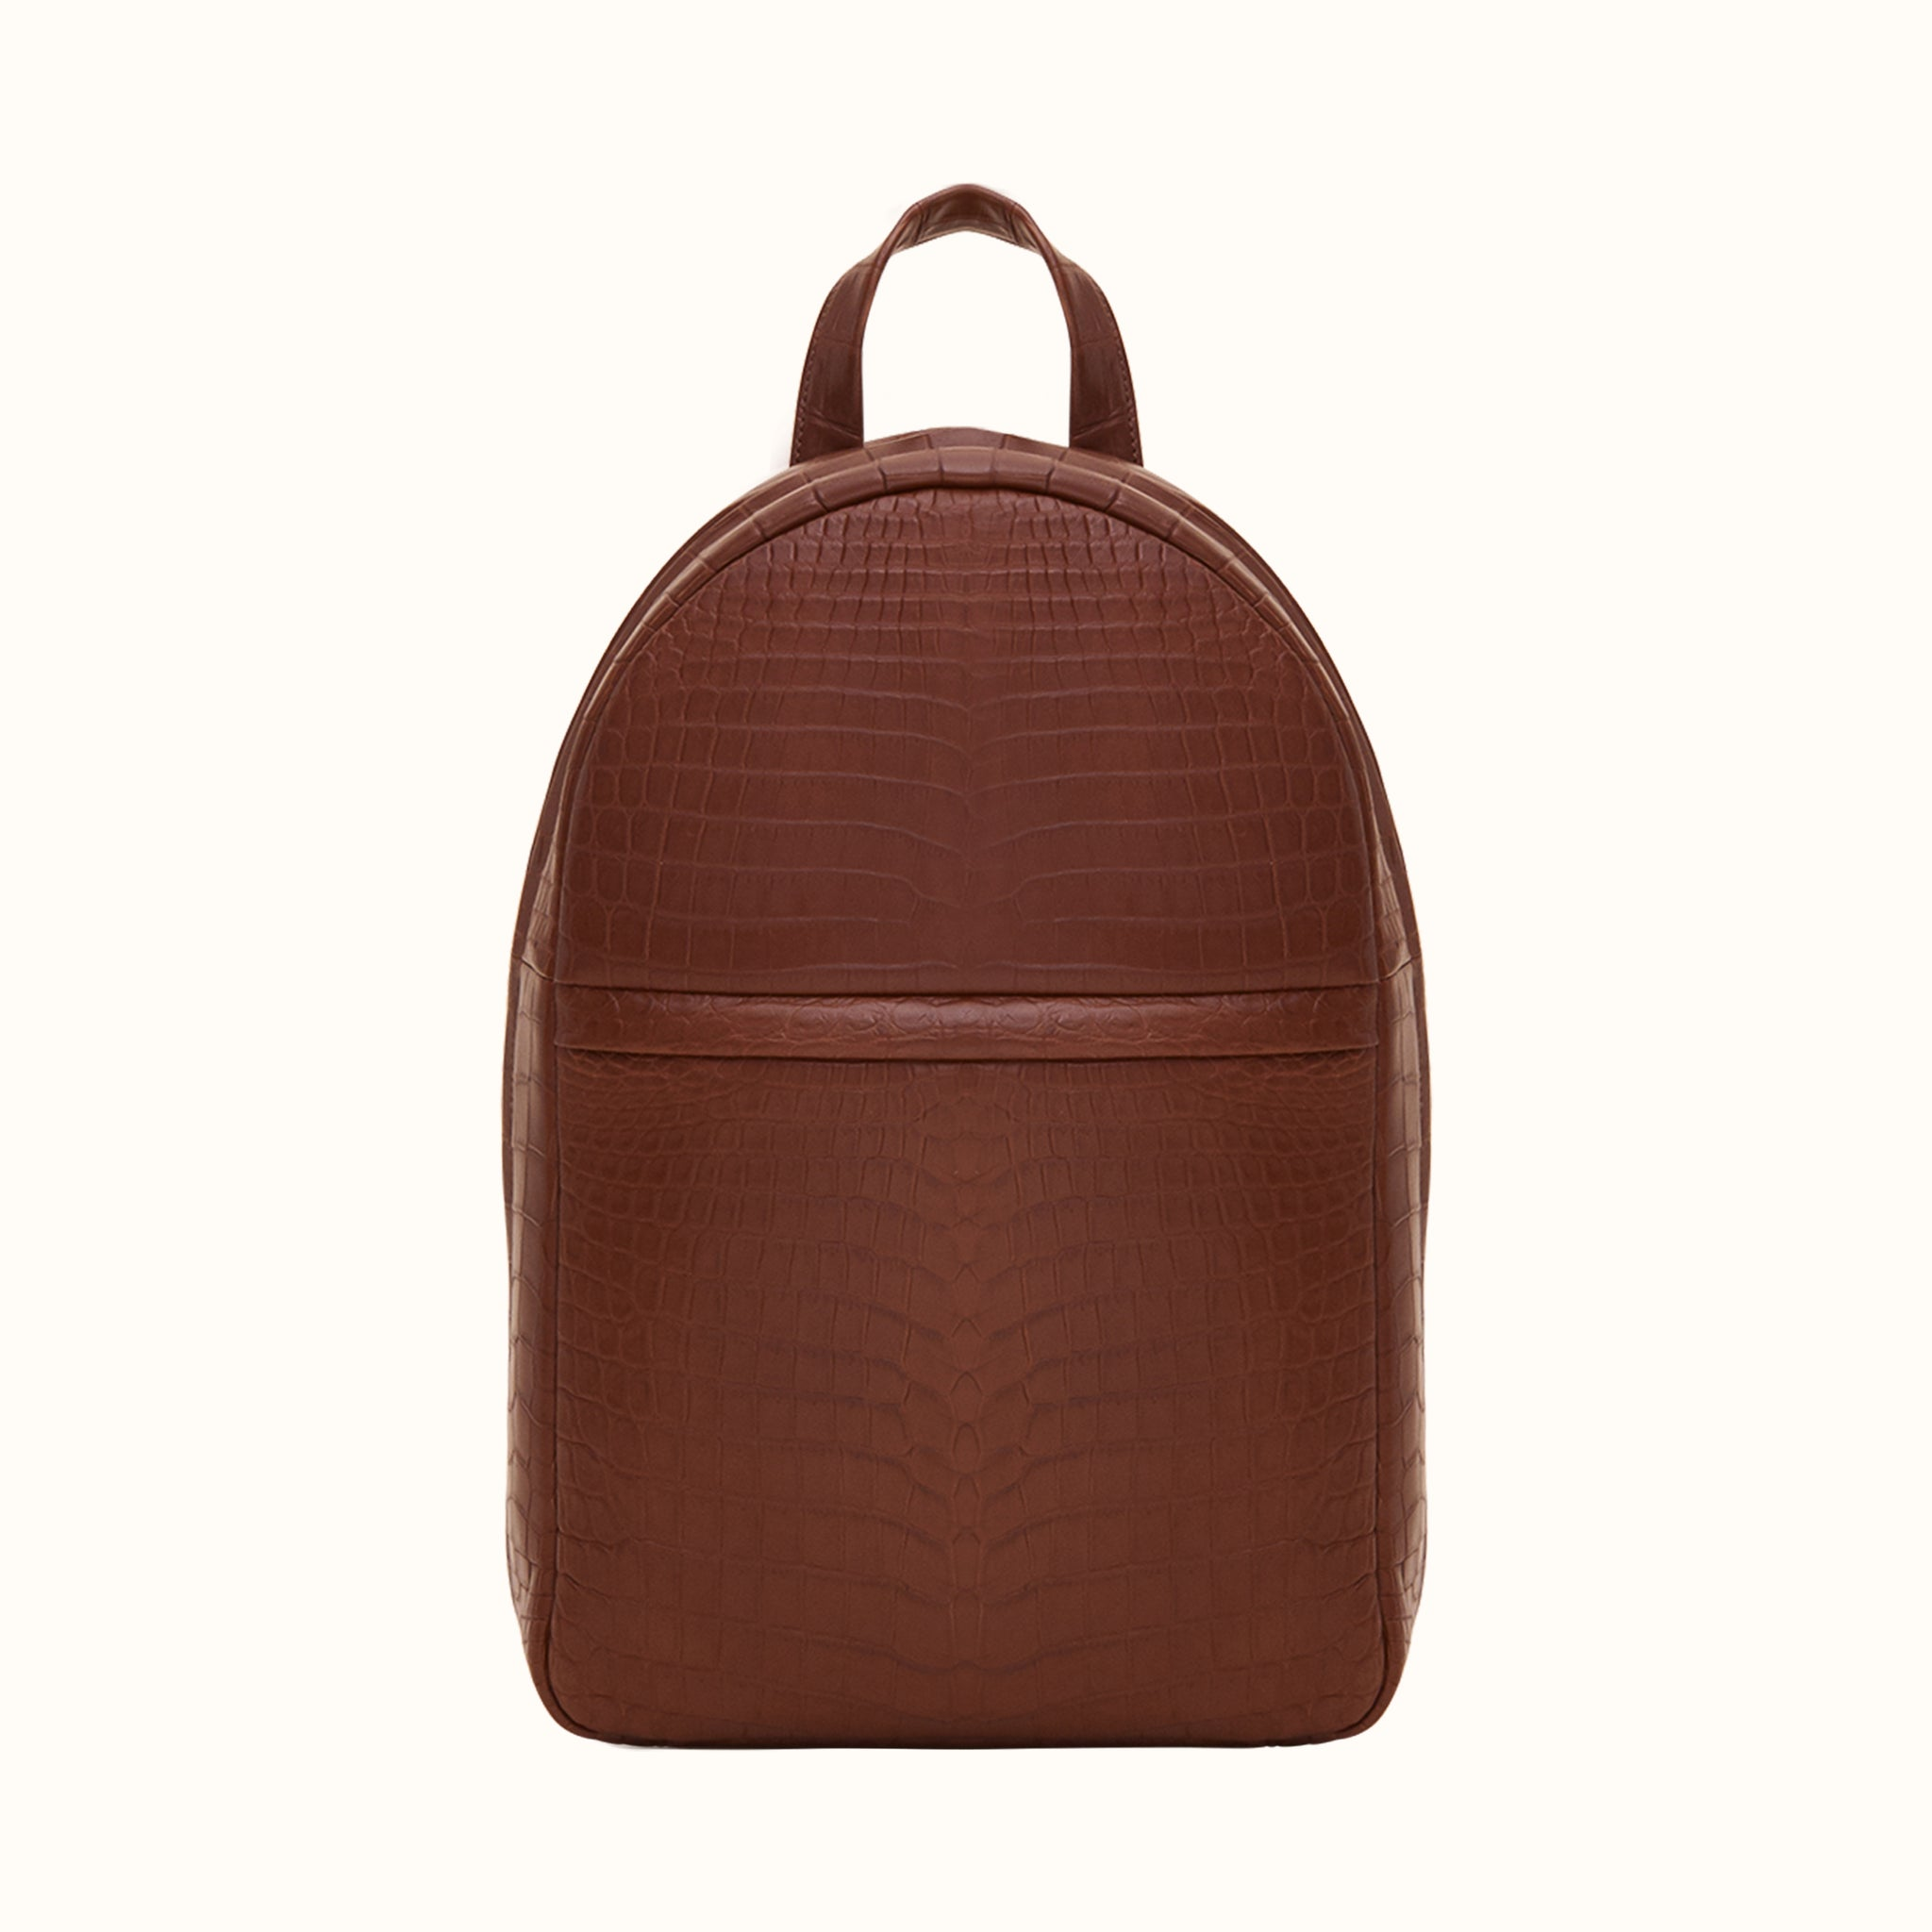 Backpack [Saddle]